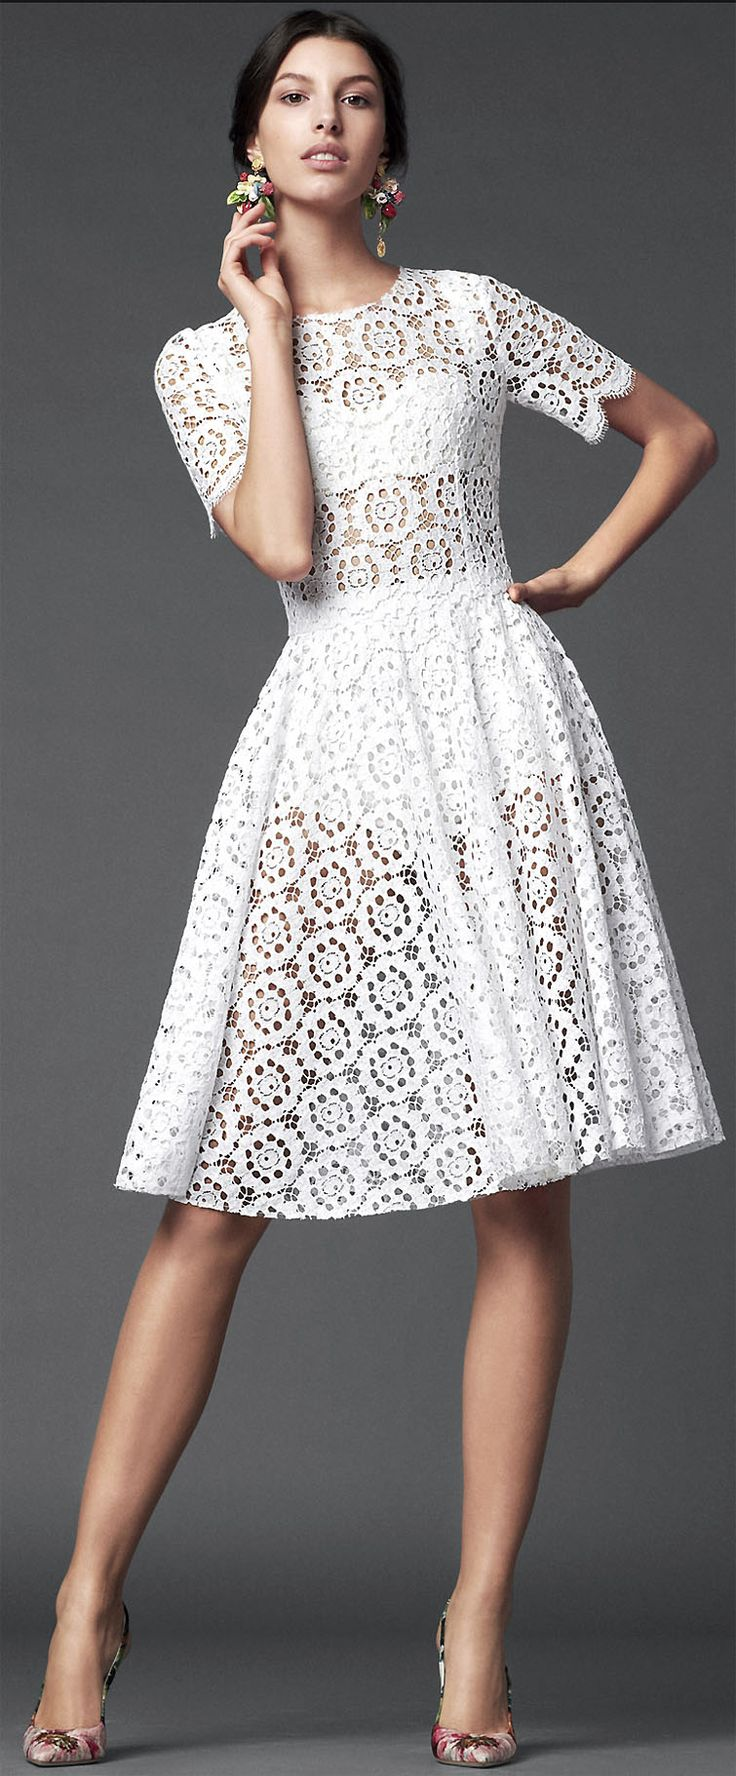 Dolce and Gabbana - one word for their designs: LUSH @TopCashback #Designer #Dresses